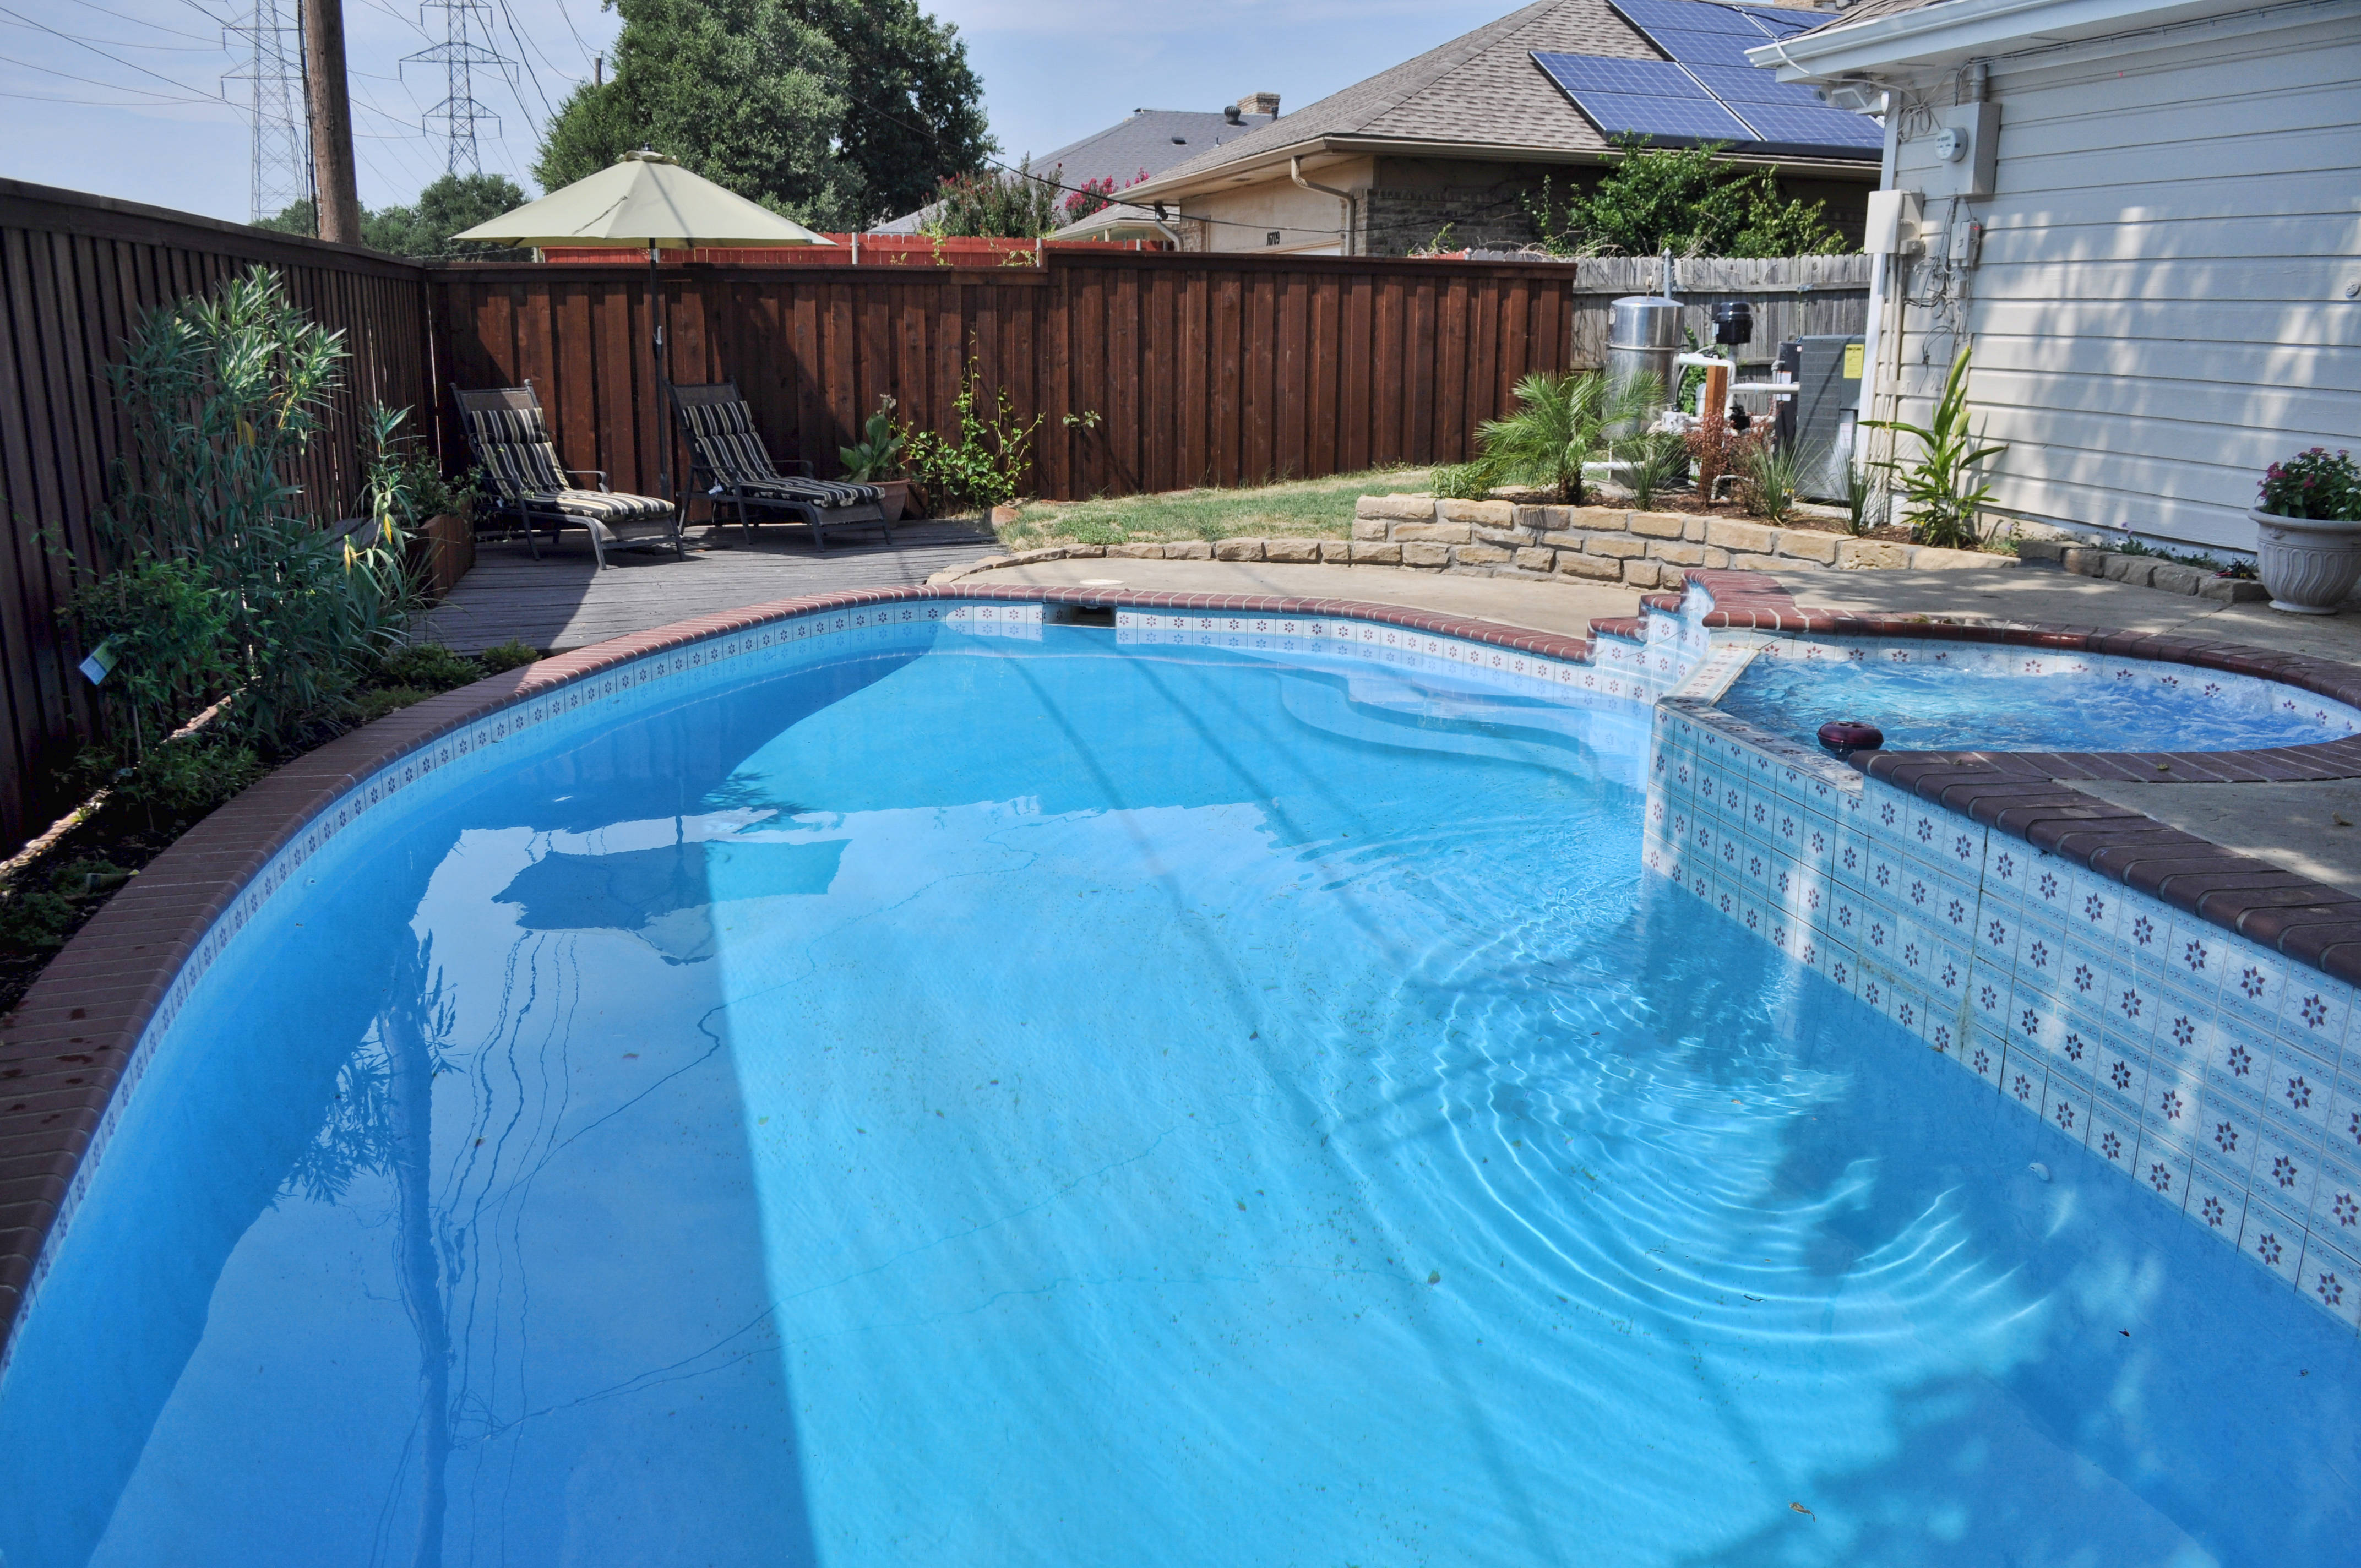 dallas home for sale that goes to richardson isd